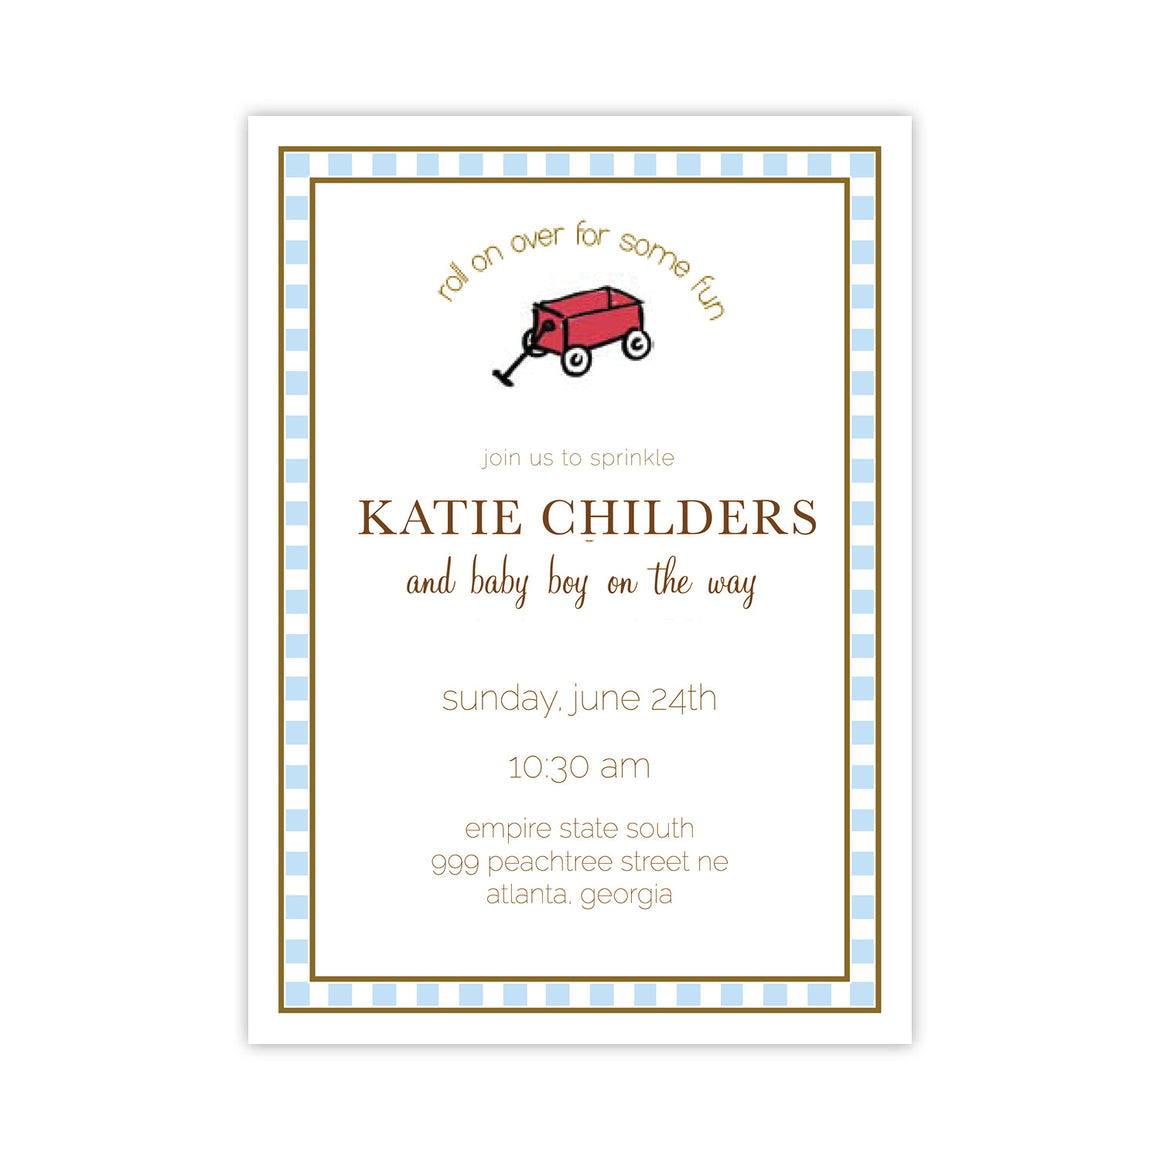 Roll Over for Fun Baby Shower Invitation